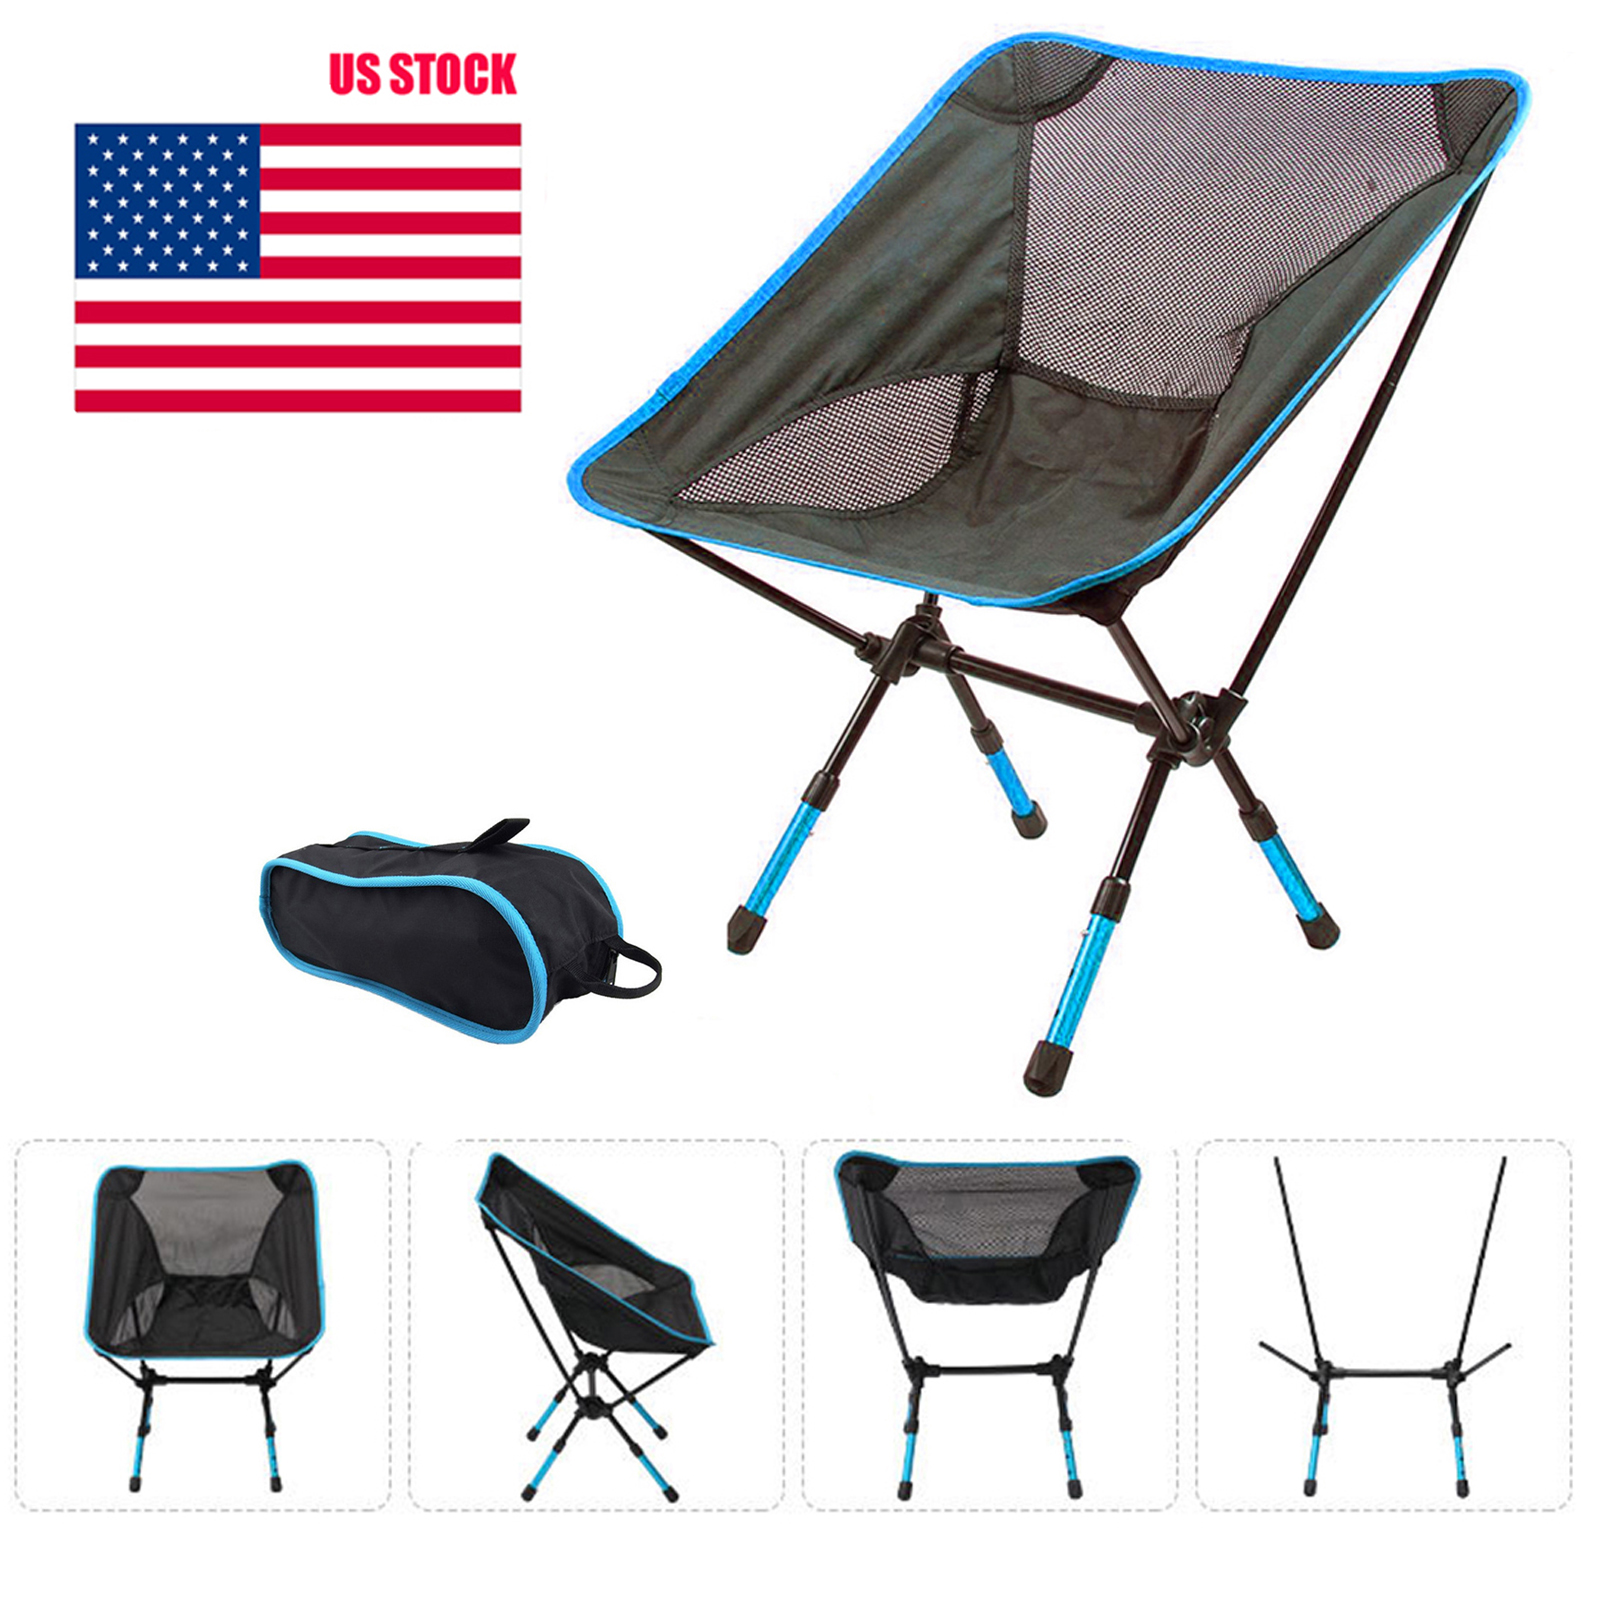 Adjustable Folding Chair Outdoor Camping Lightweight Portable Chair with Carry Bag for Picnic BBQ Beach Fishing Warehouse hot sale lightweight folding camping chair portable outdoor fishing seat for foldable picnic bbq beach party with bag red